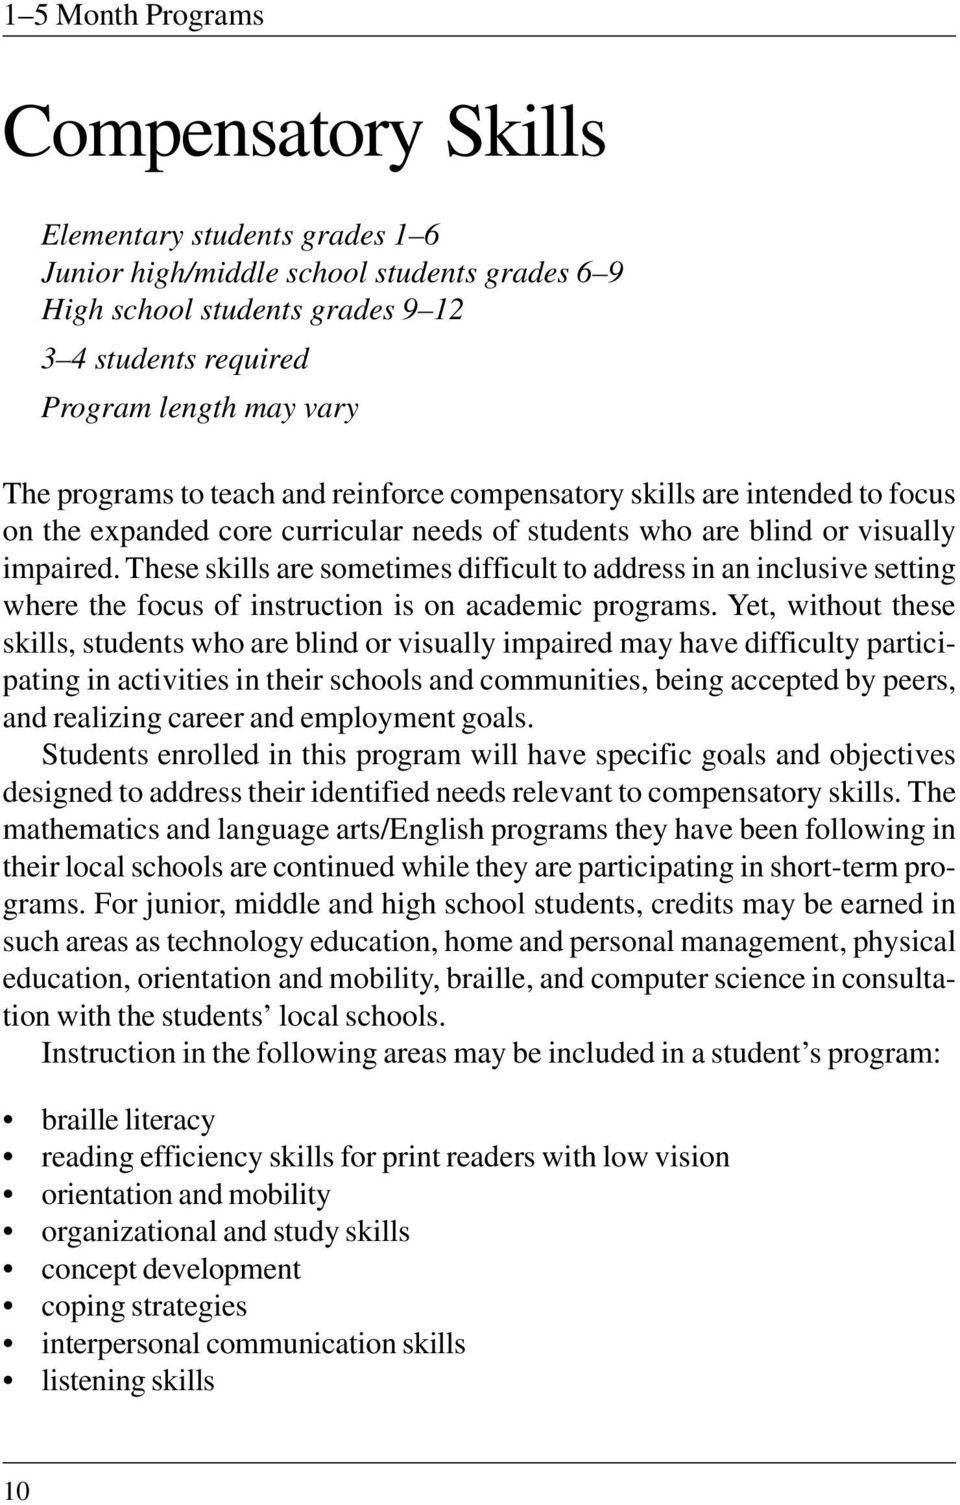 These skills are sometimes difficult to address in an inclusive setting where the focus of instruction is on academic programs.